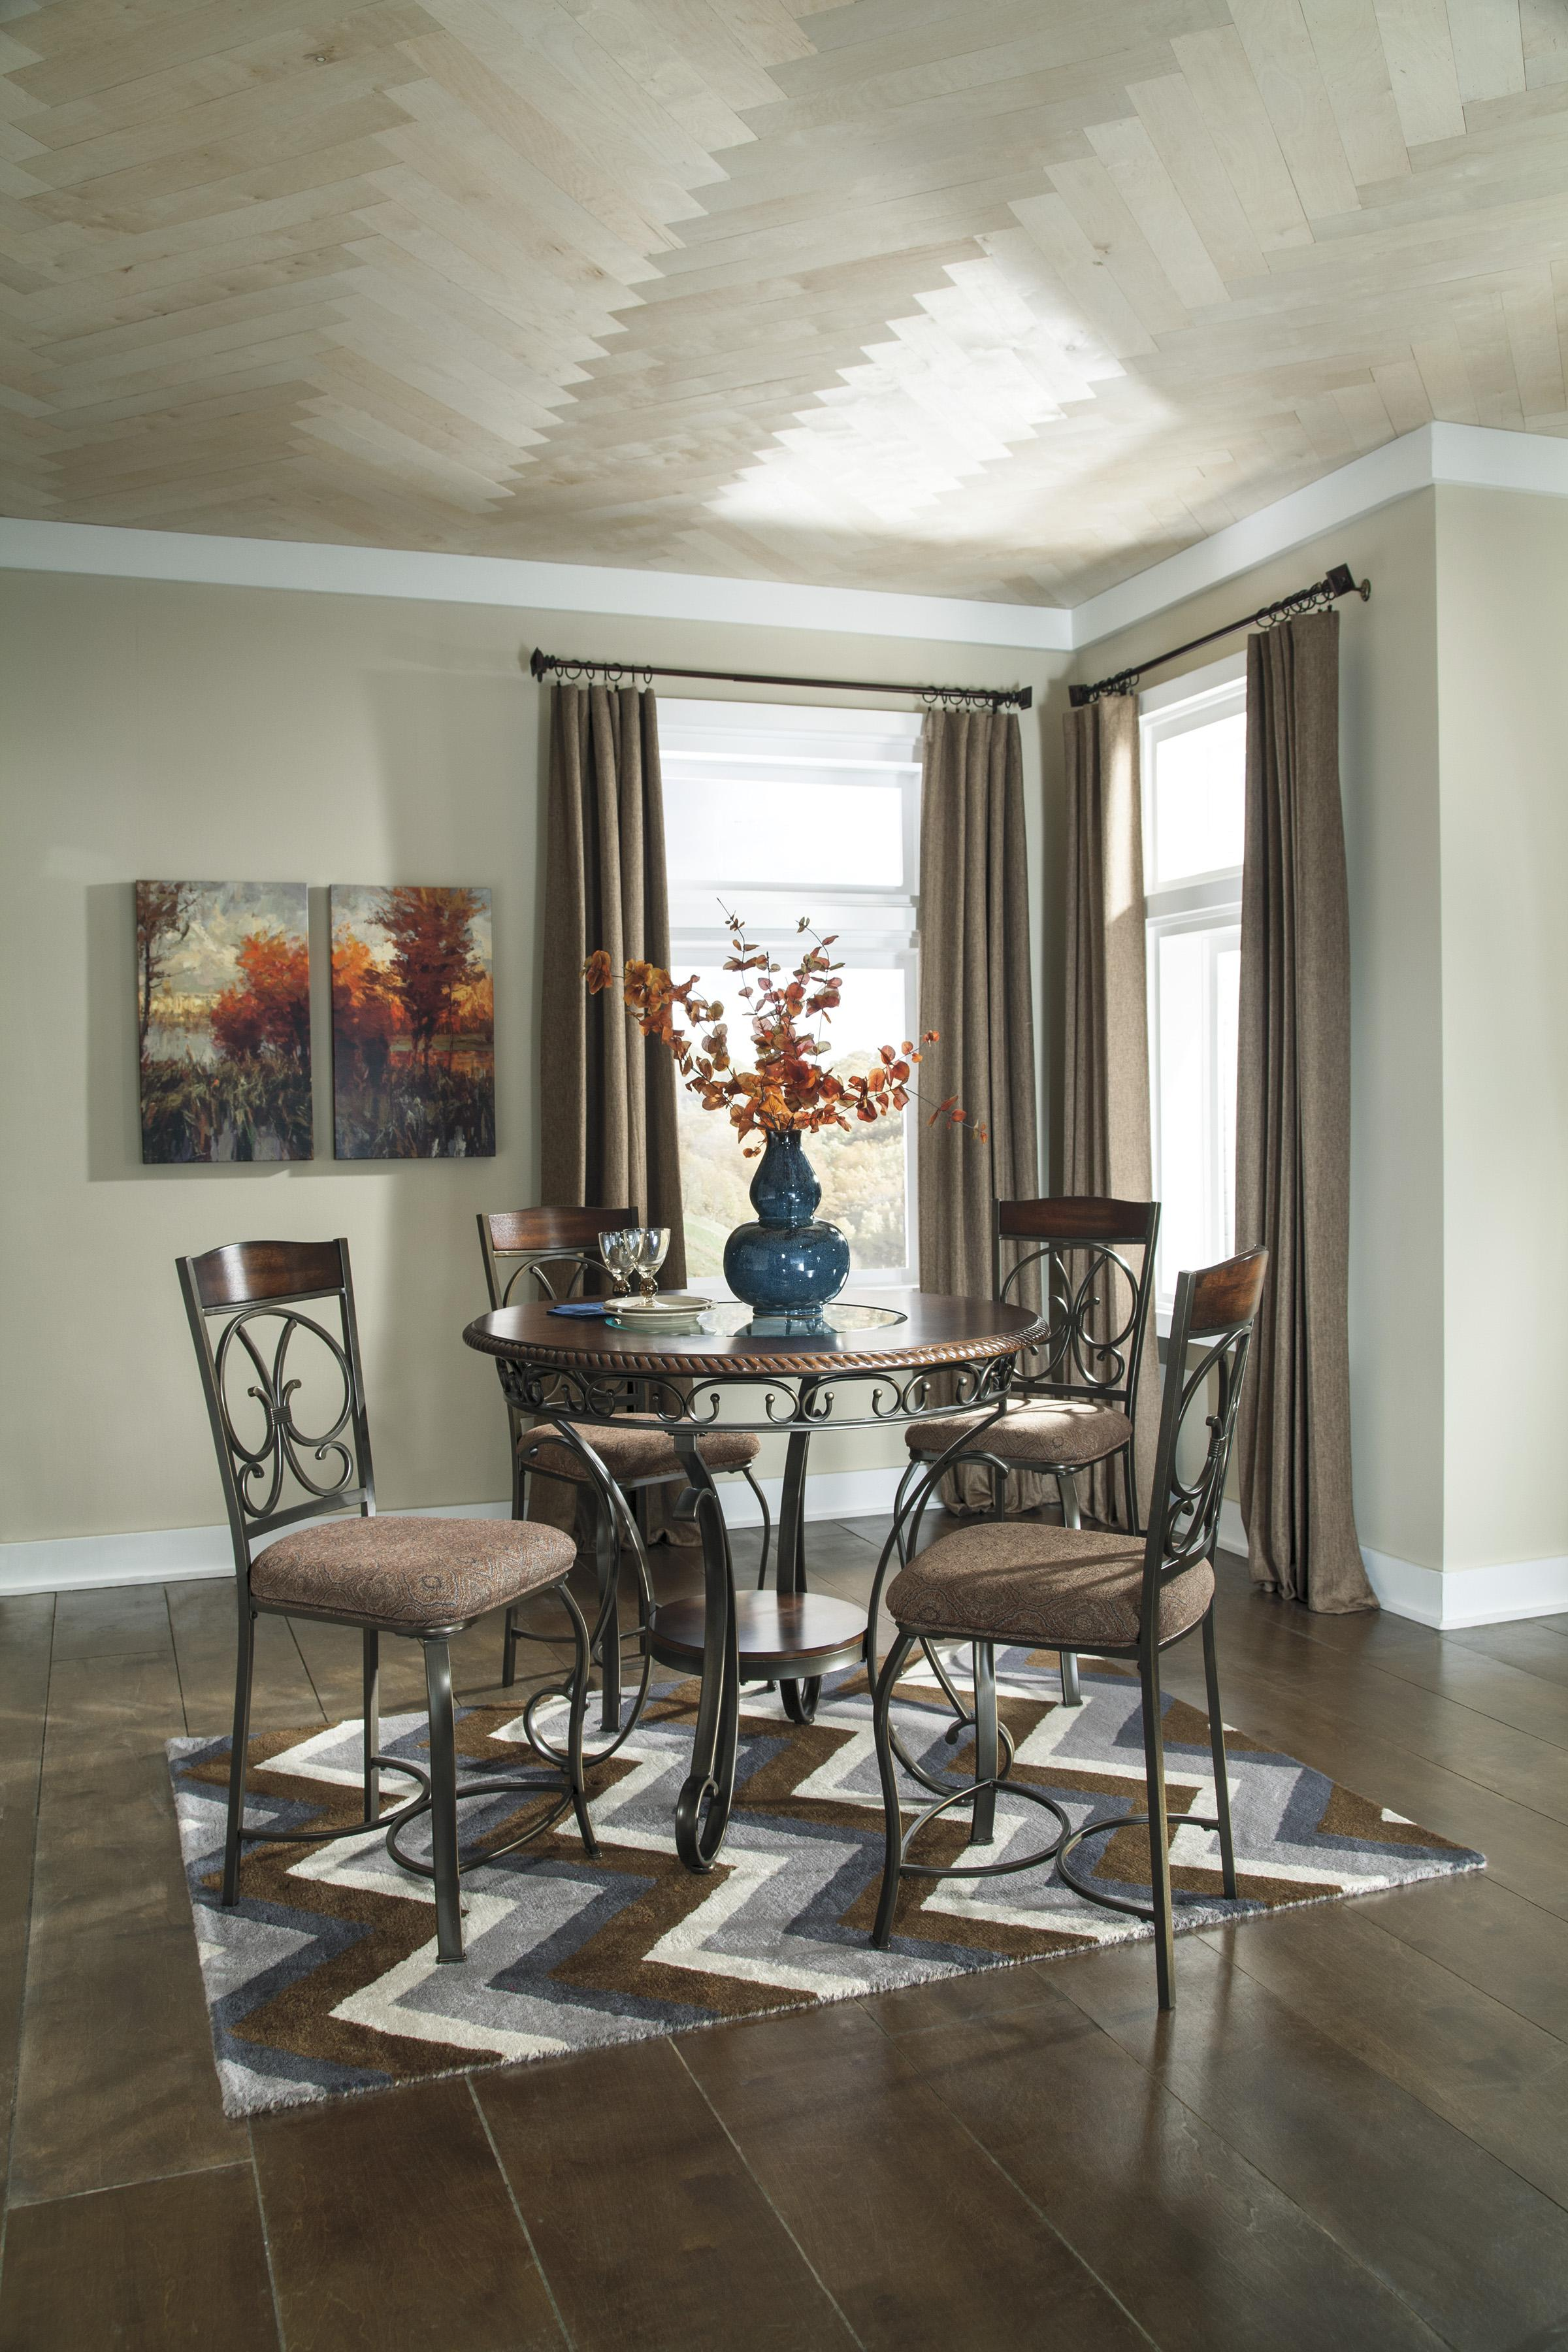 round kitchen table sets Signature Design by Ashley Furniture Glambrey Round Dining Table and 4 Chair Set with Metal Accents Sam s Appliance Furniture Dining 5 Piece Set